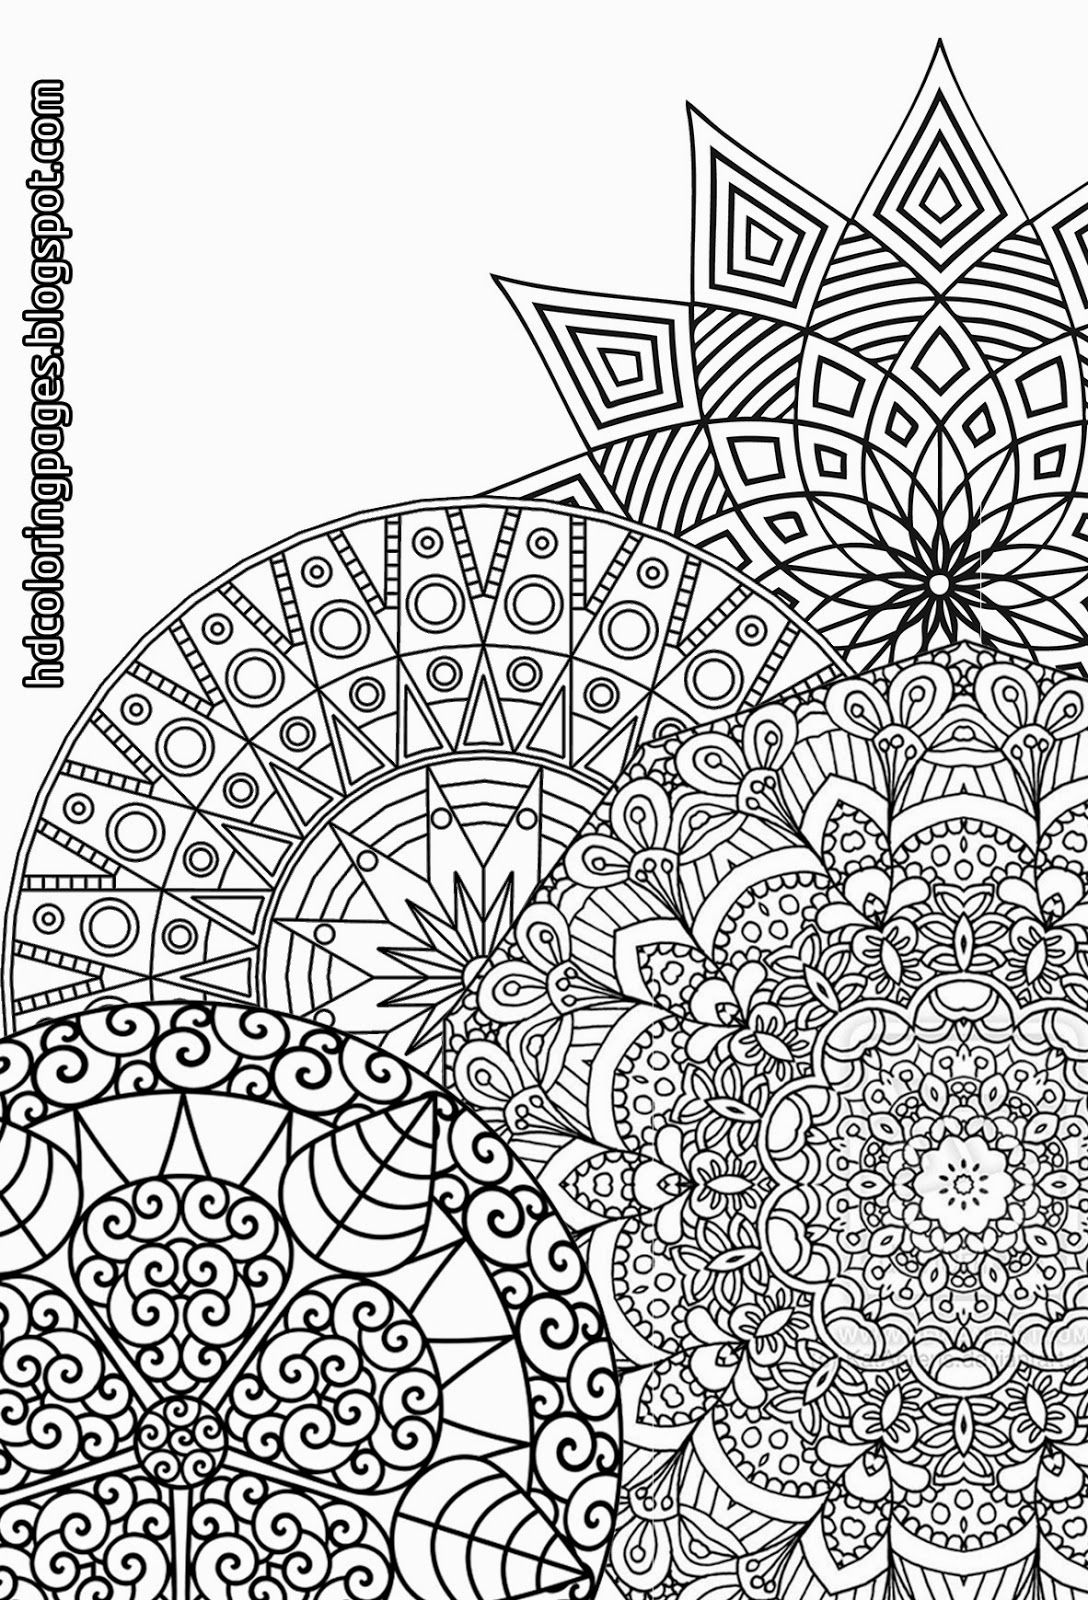 Super Detailed Mandalas Coloring Pages For Adult Coloring